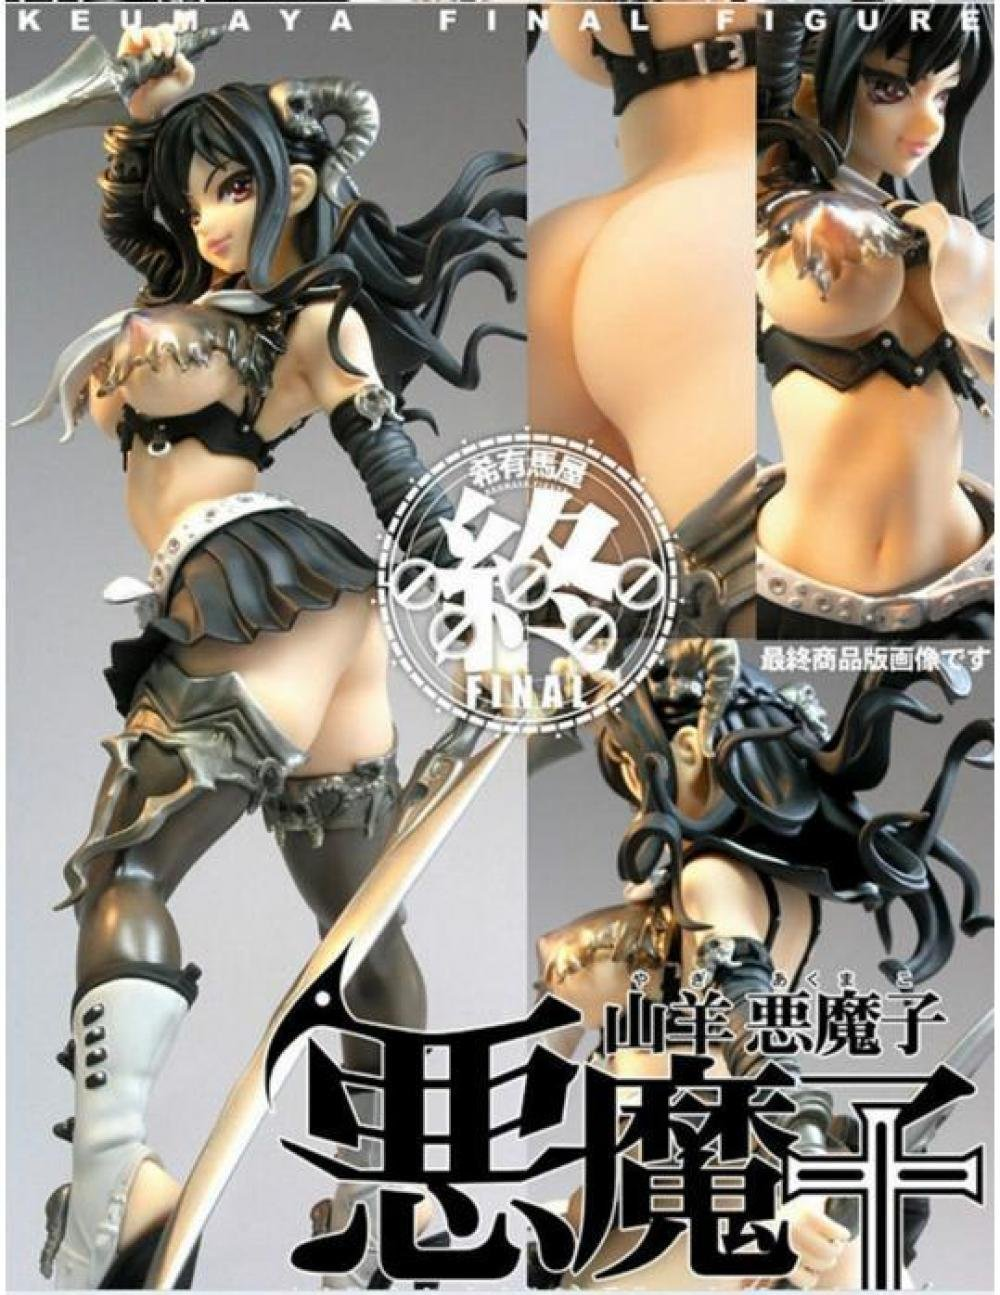 Sexy Japan Anime KEUMAYA Final Figure Model 11 Inch 1/7 Scale Hyper Nurse GAL MAKO BLACK GOAT DAUGH